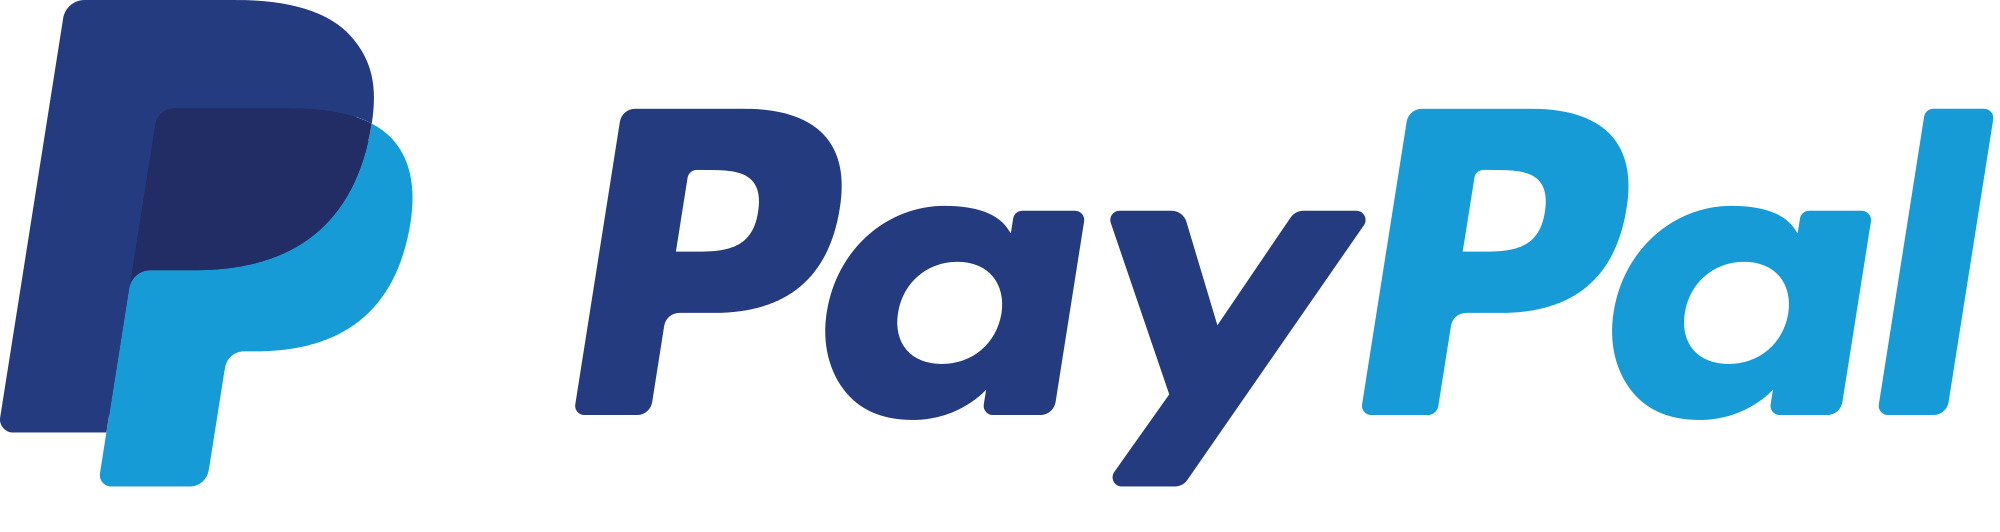 Paypal Payments Processing